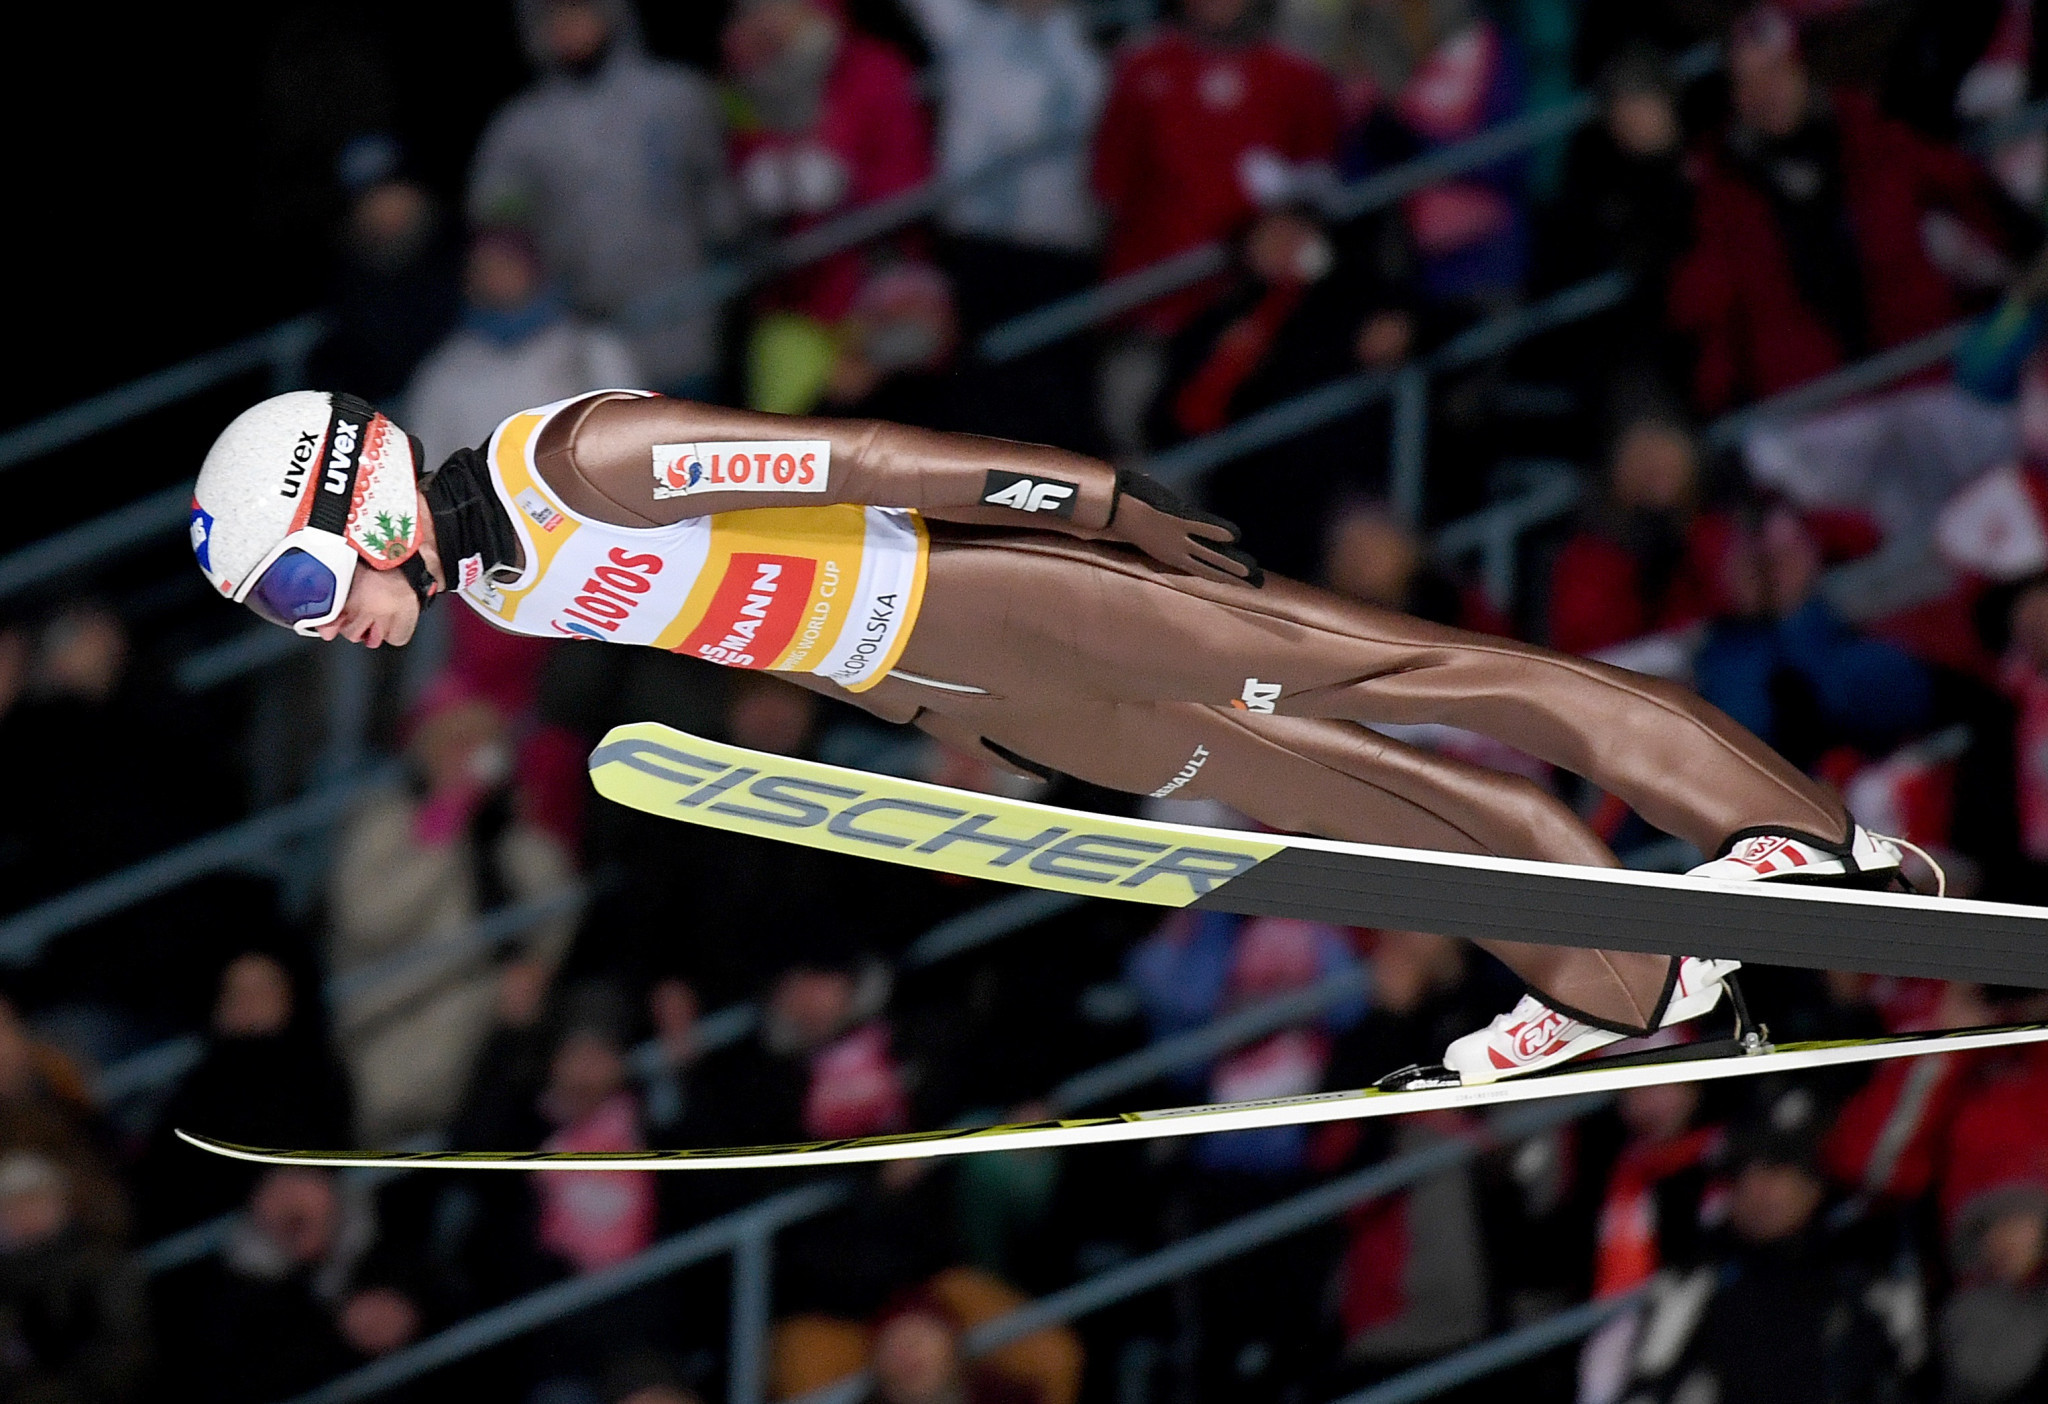 Poland's Kamil Stoch topped the qualification standings as action began today at the FIS Ski Jumping World Cup in Willingen in Germany ©Getty Images